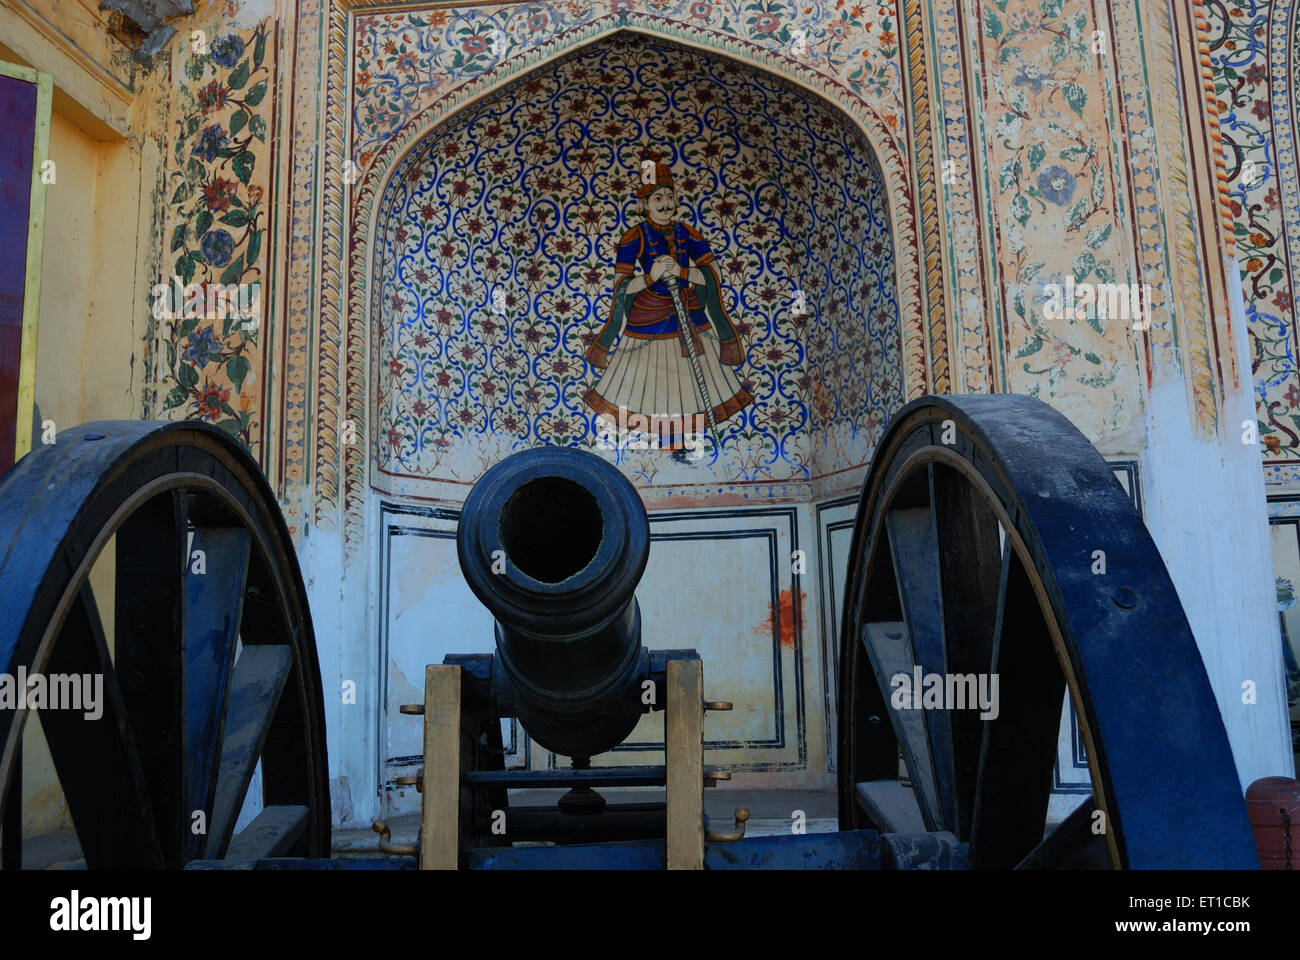 Cannon city palace Jaipur Rajasthan Inde Asie Photo Stock